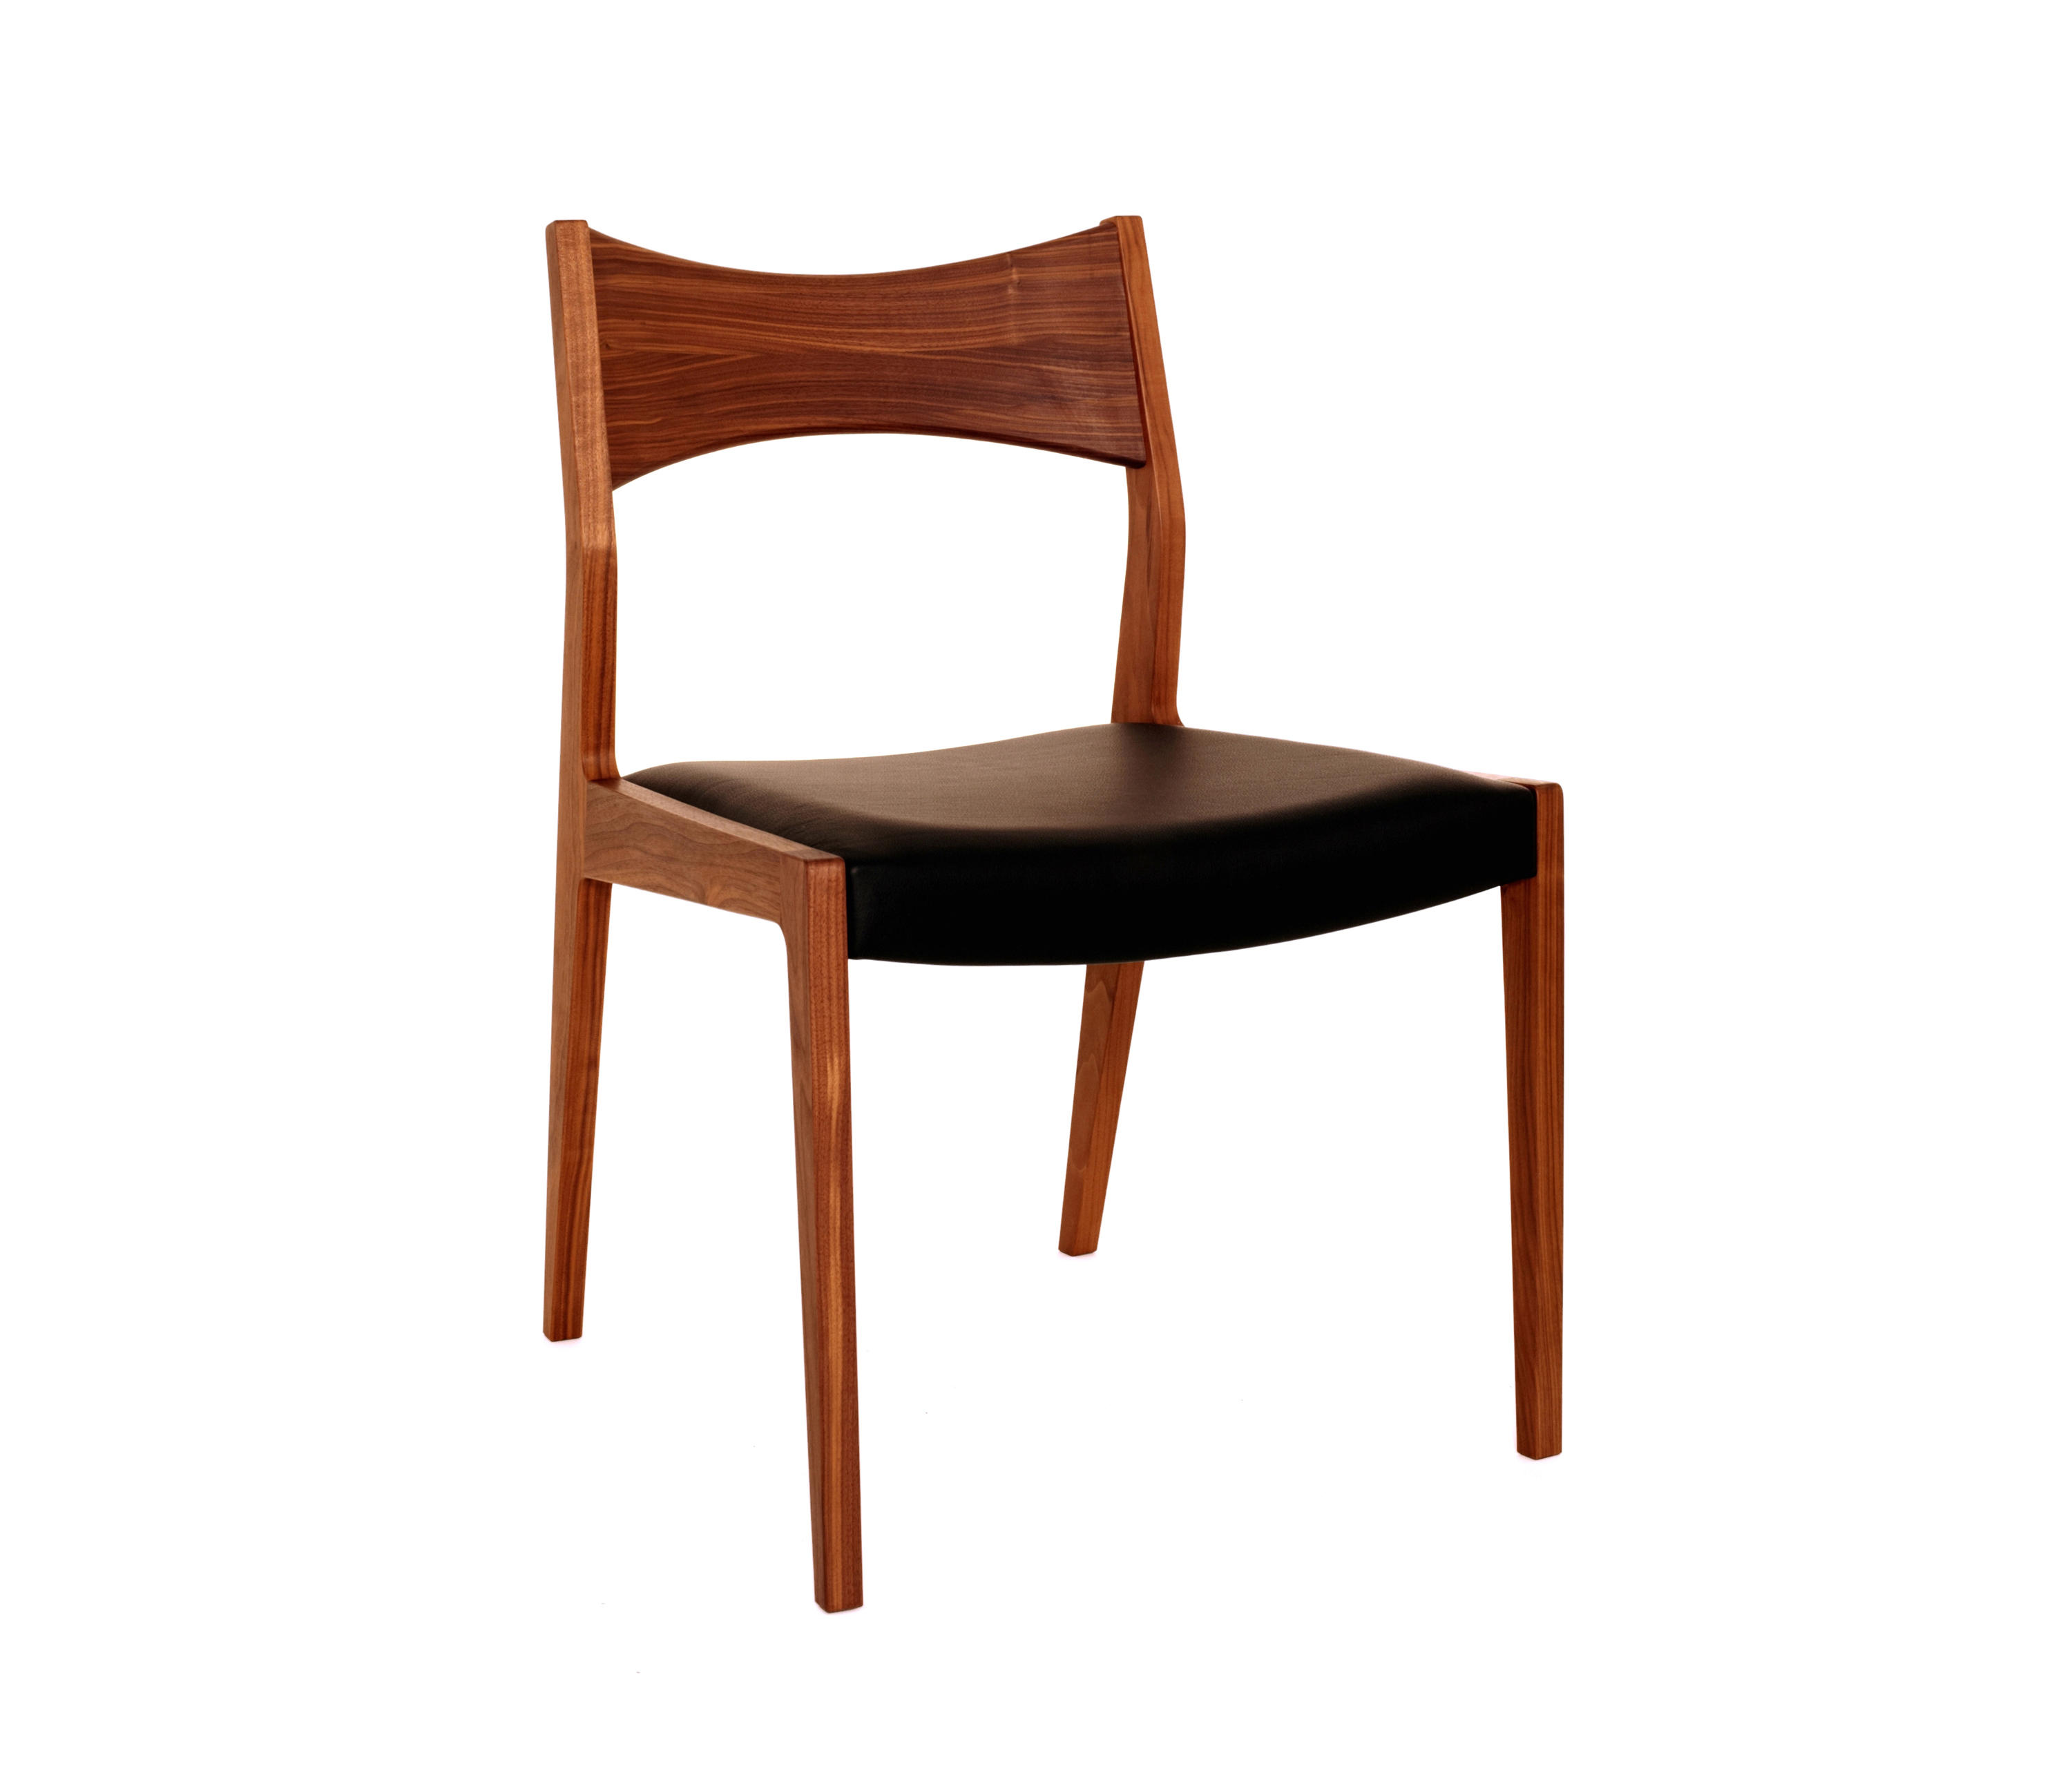 Ordinaire Baker Chair By Dare Studio | Chairs ...